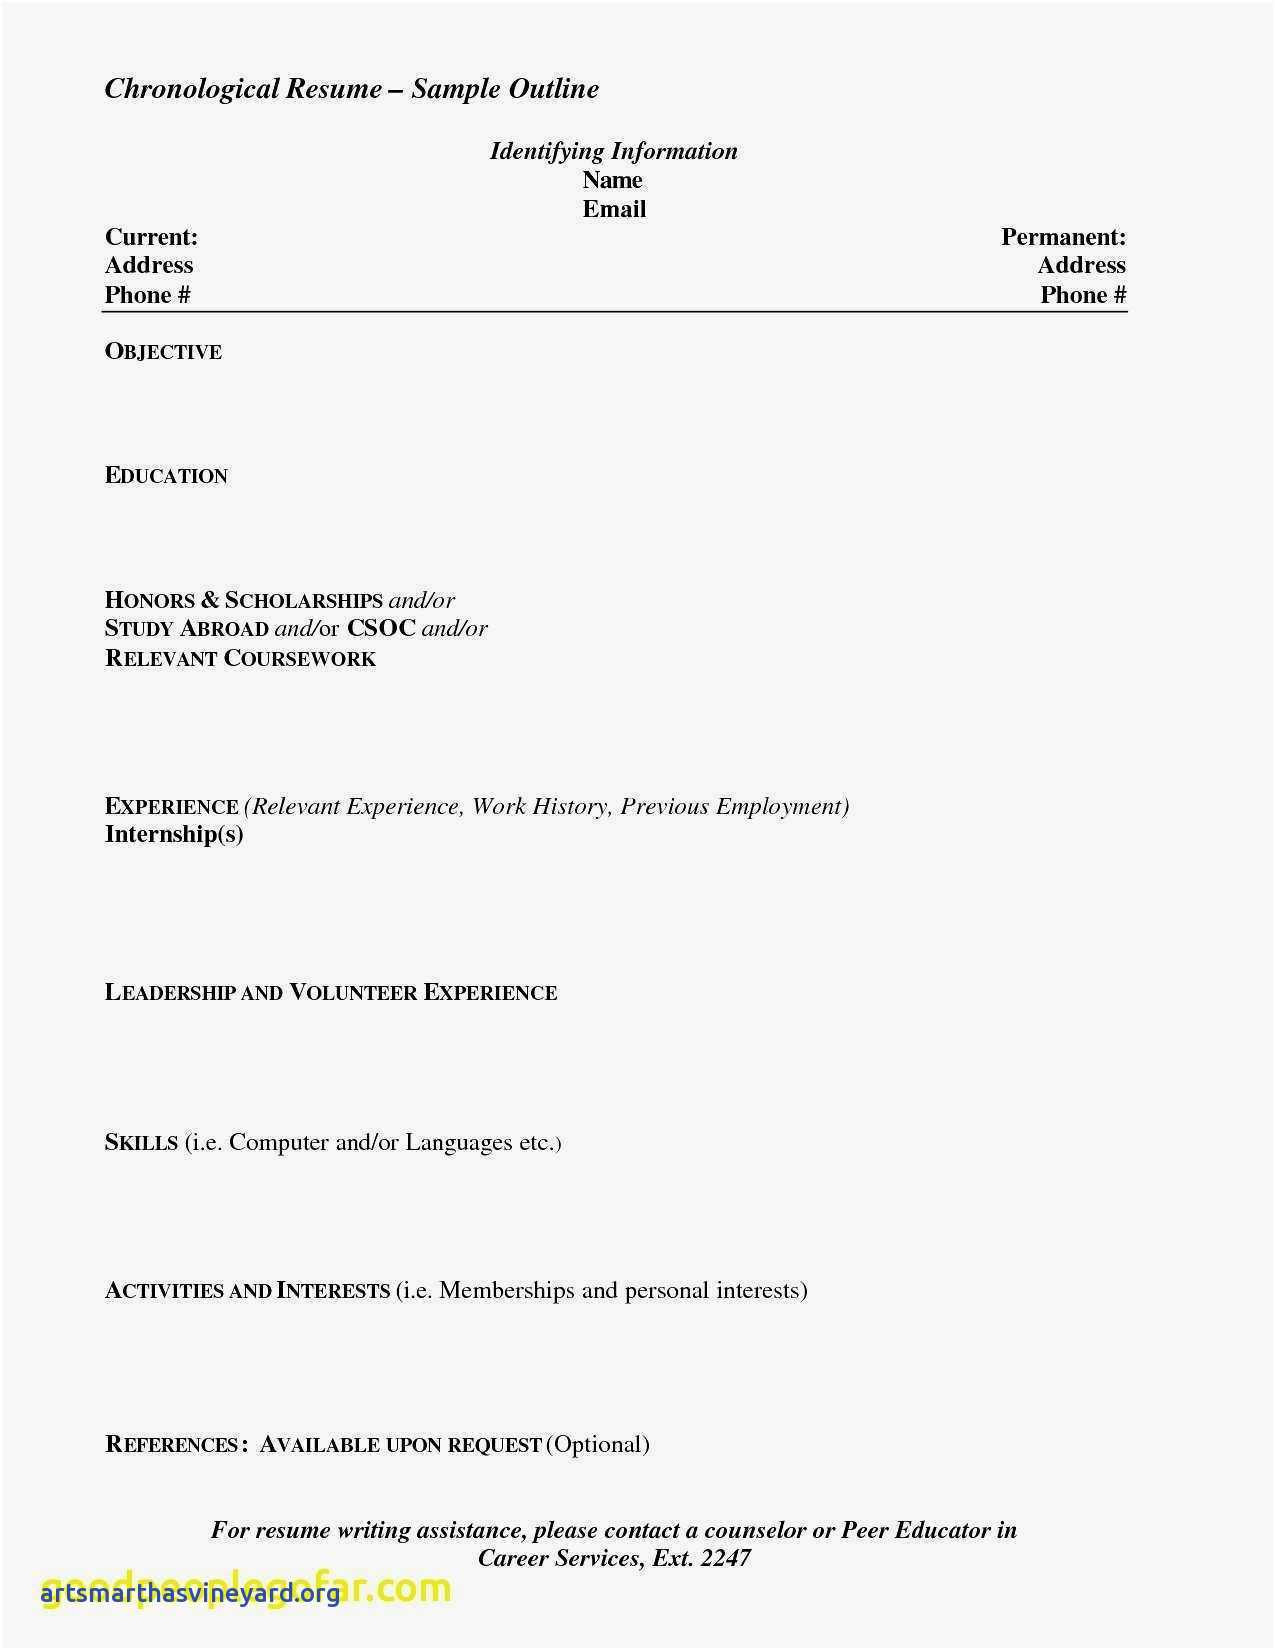 Chronological Resume Template 2018 - What Should Be A Resume for A Teenager Valid Unique Resume for